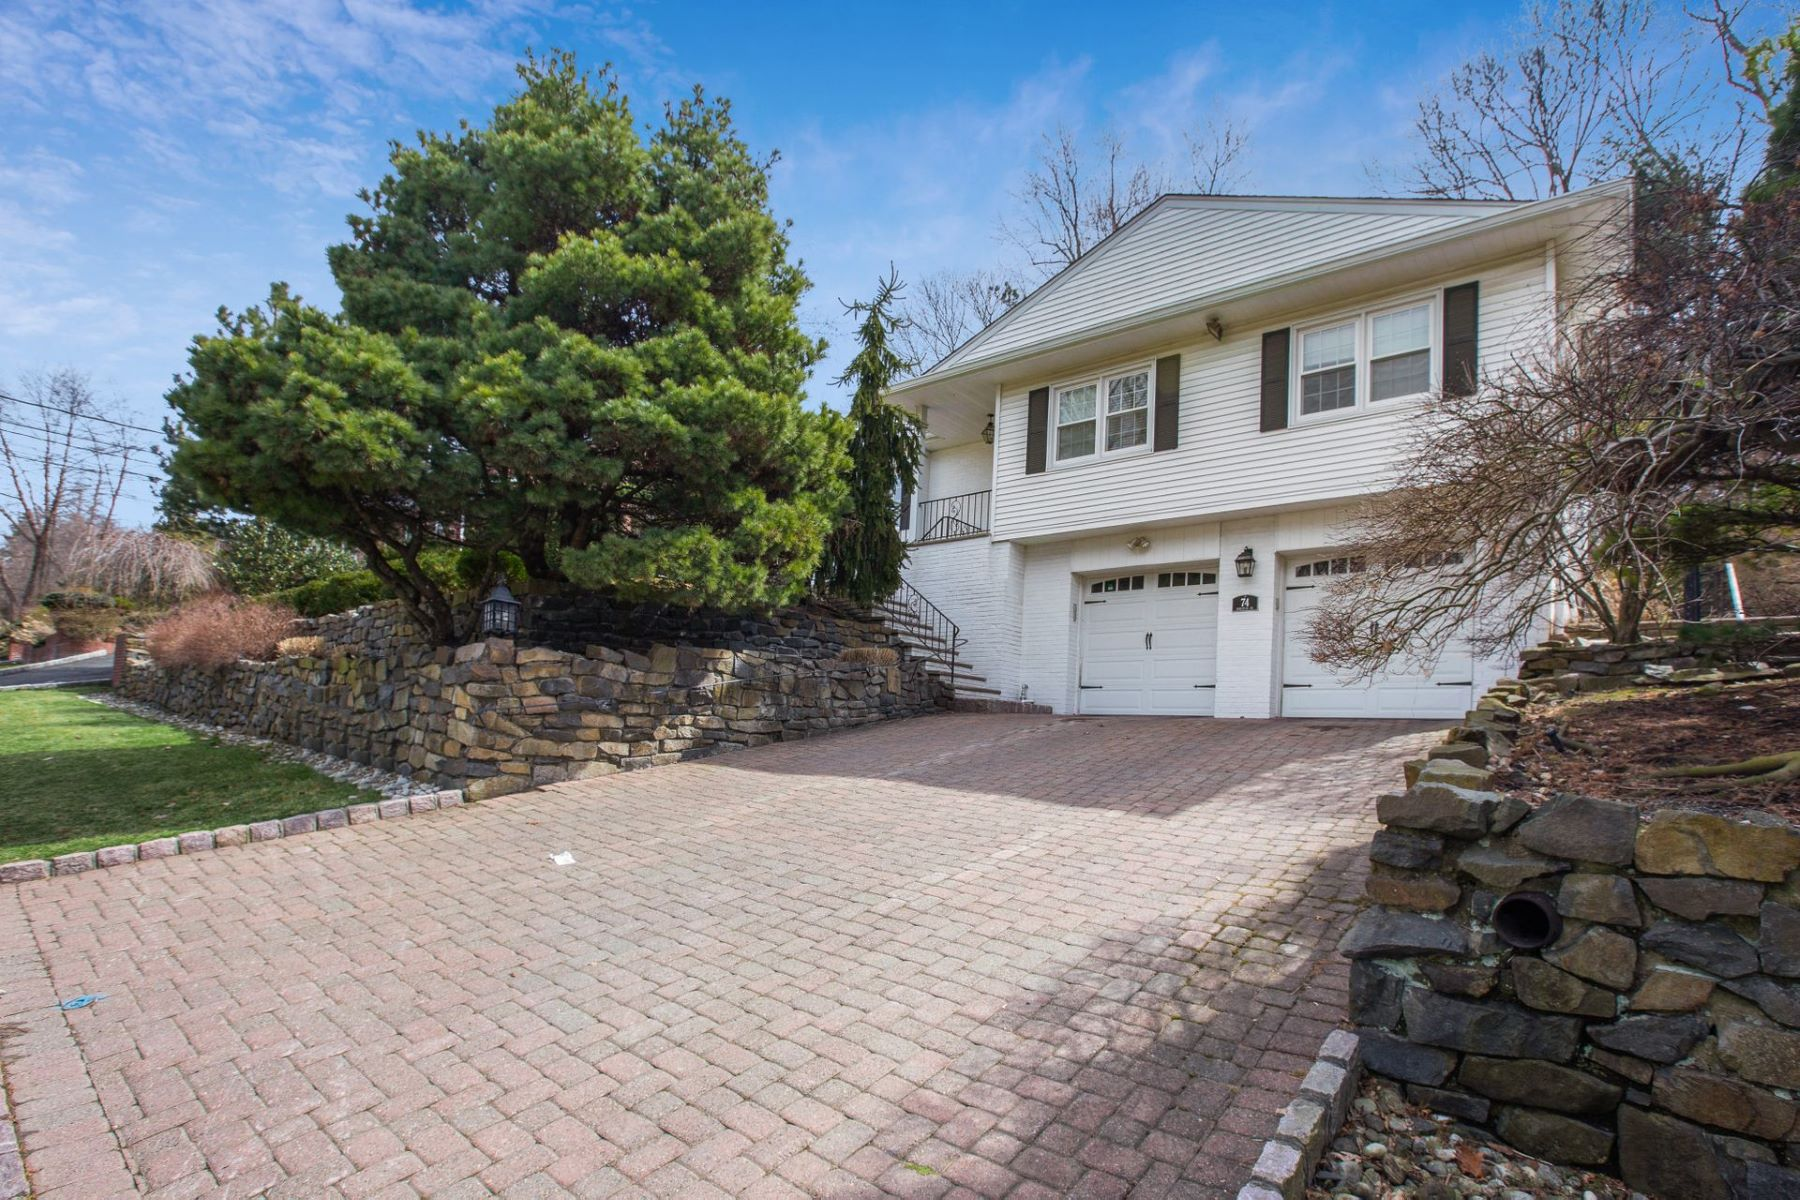 Single Family Homes for Active at Location! Location! 74 Homestead Rd Tenafly, New Jersey 07670 United States